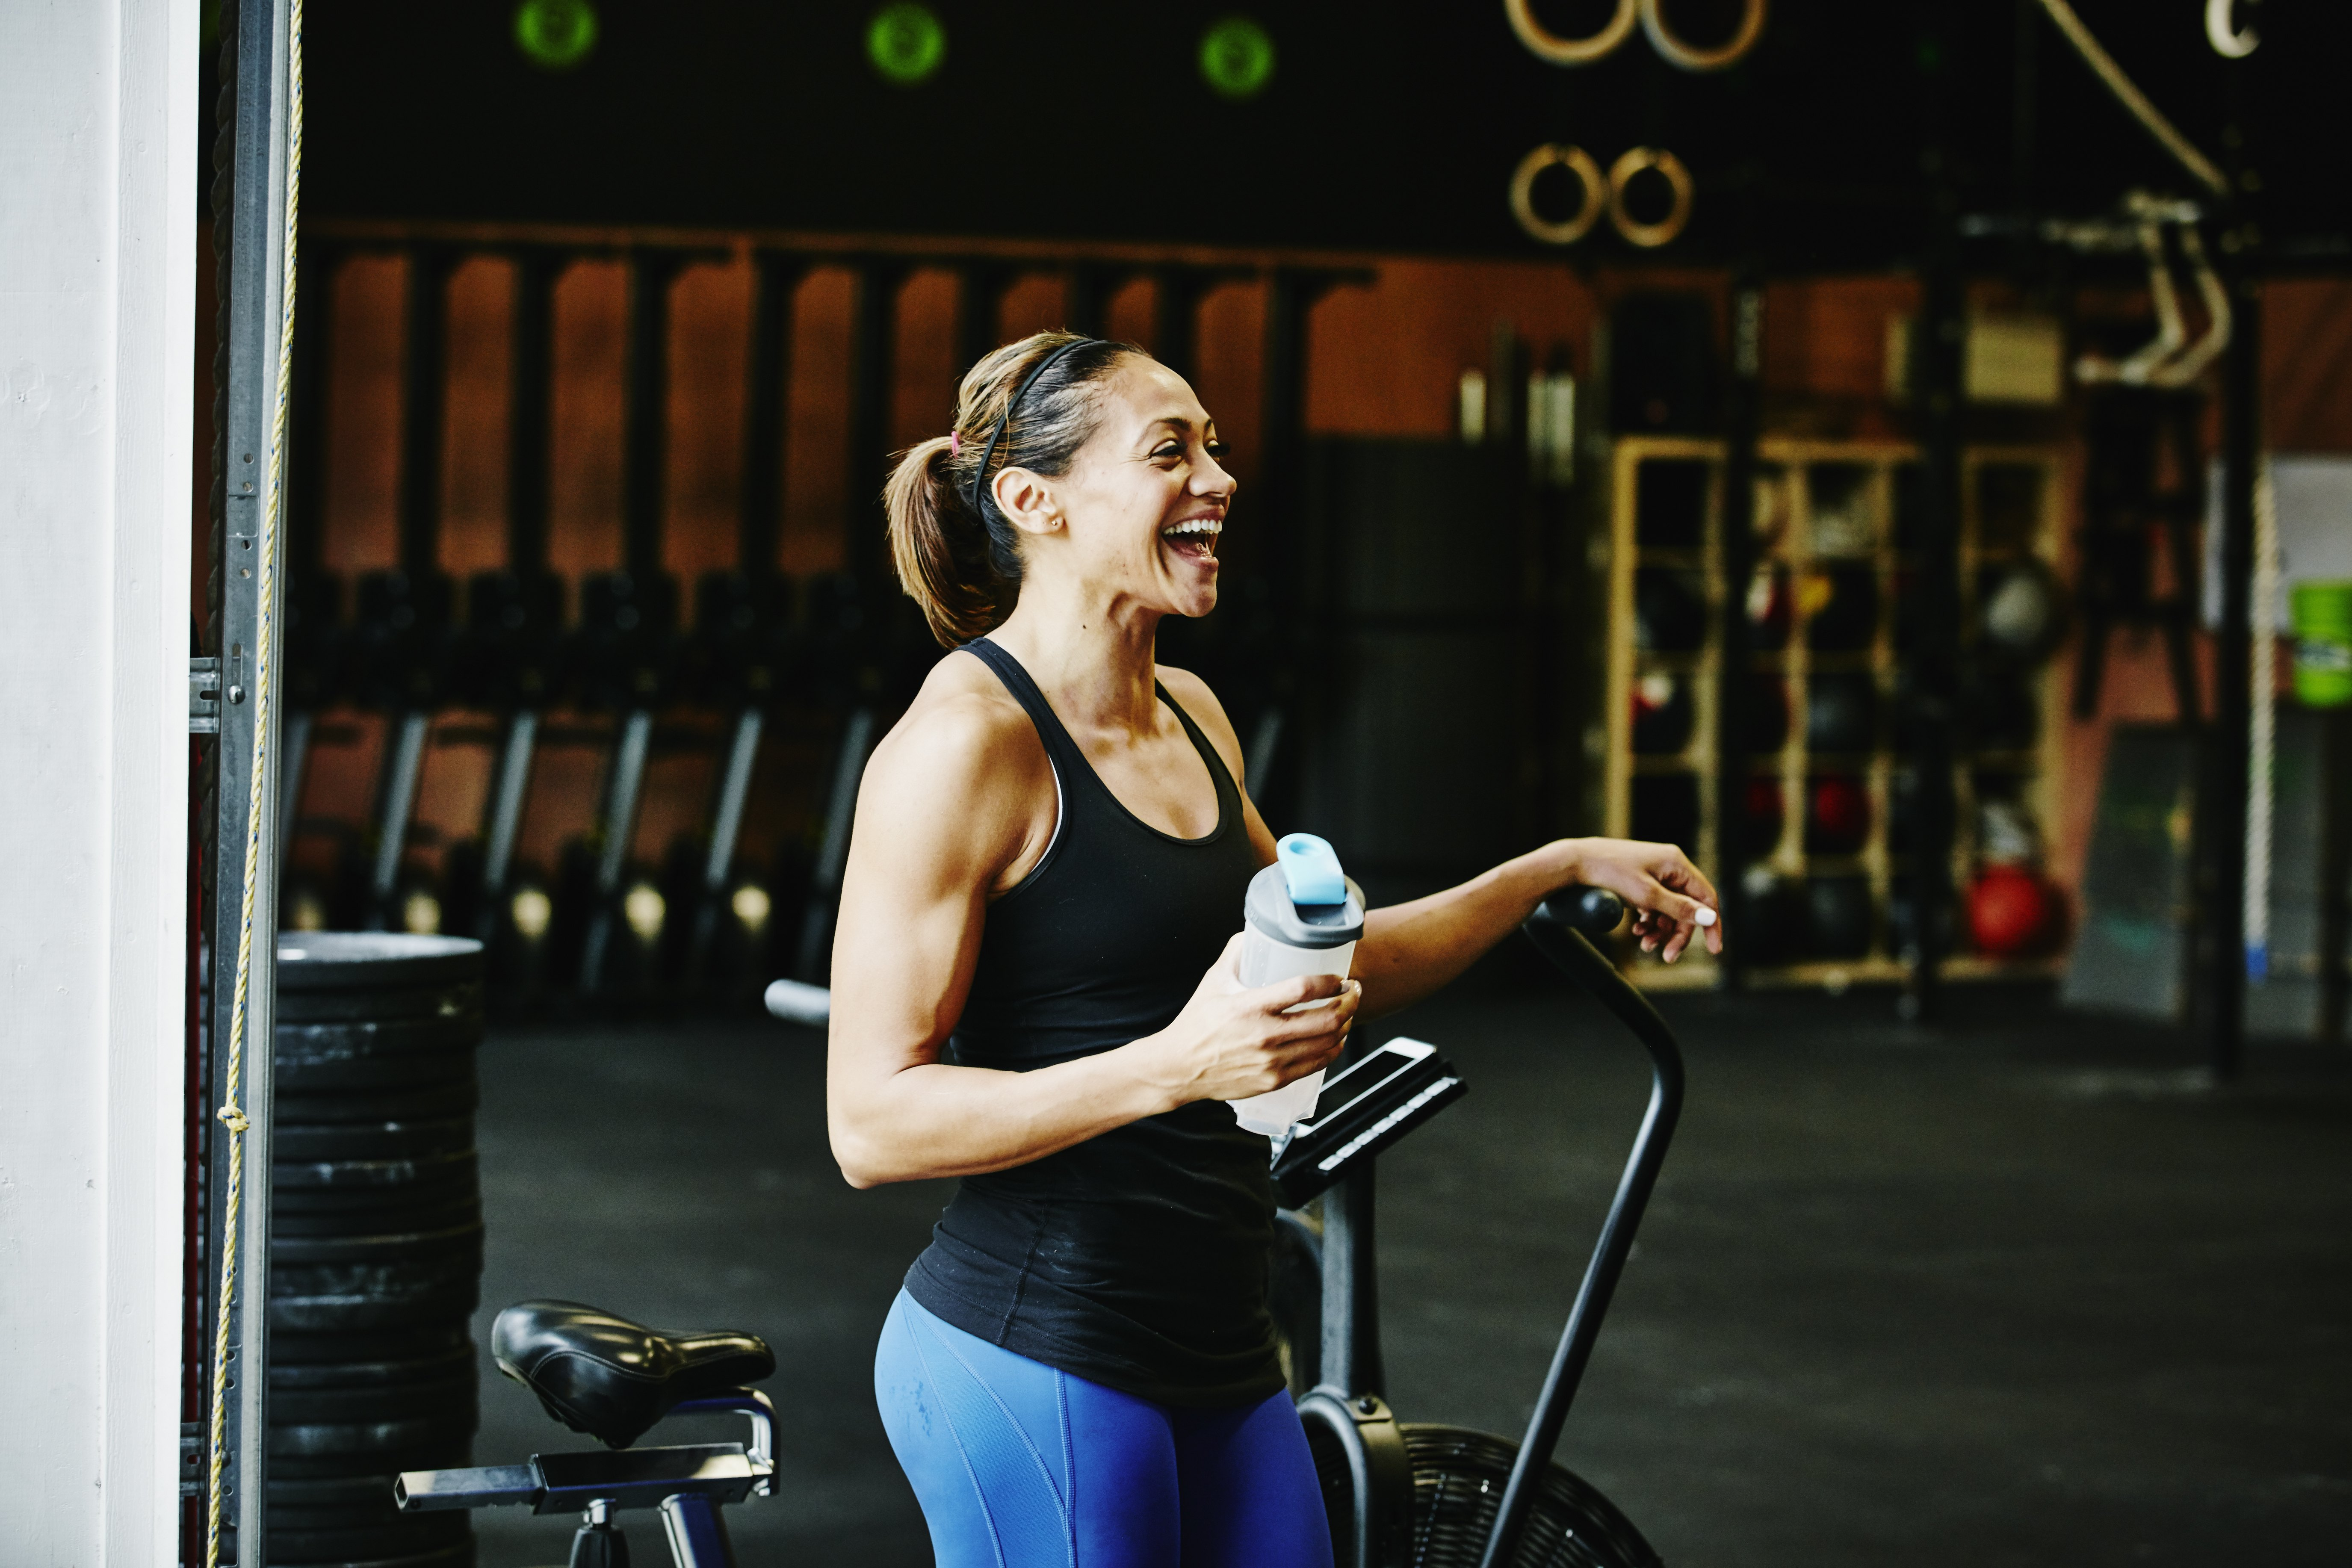 The Best CrossFit Gear to Help You Crush Your Next WOD